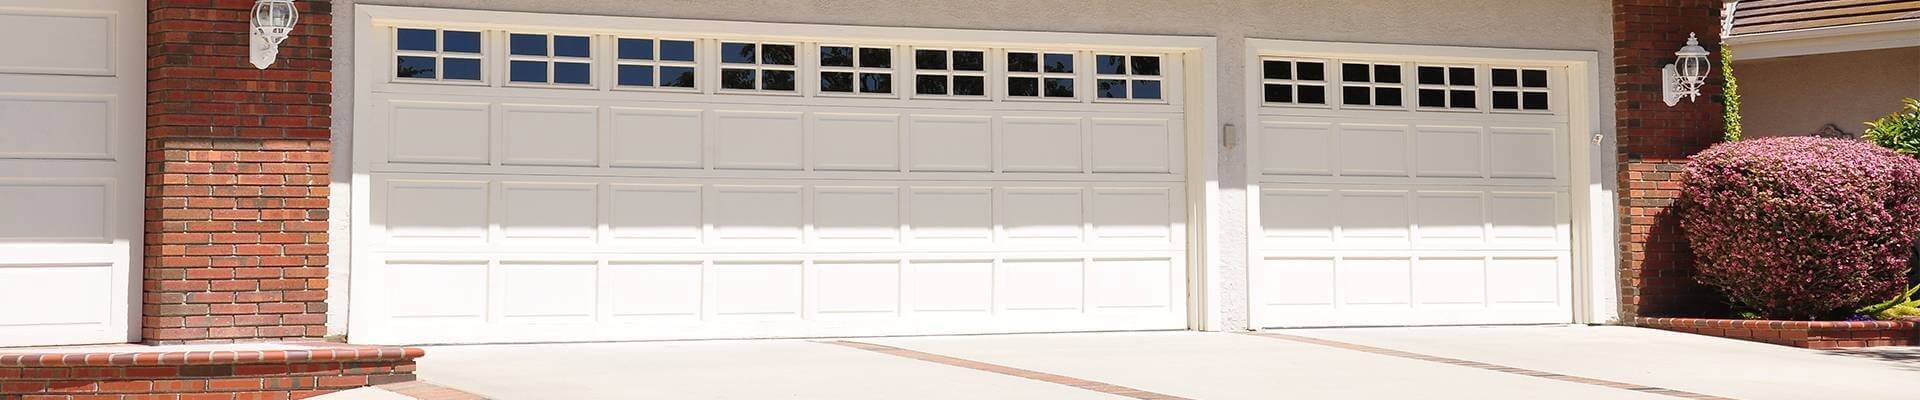 Garage Door Automatic Opener Repairs